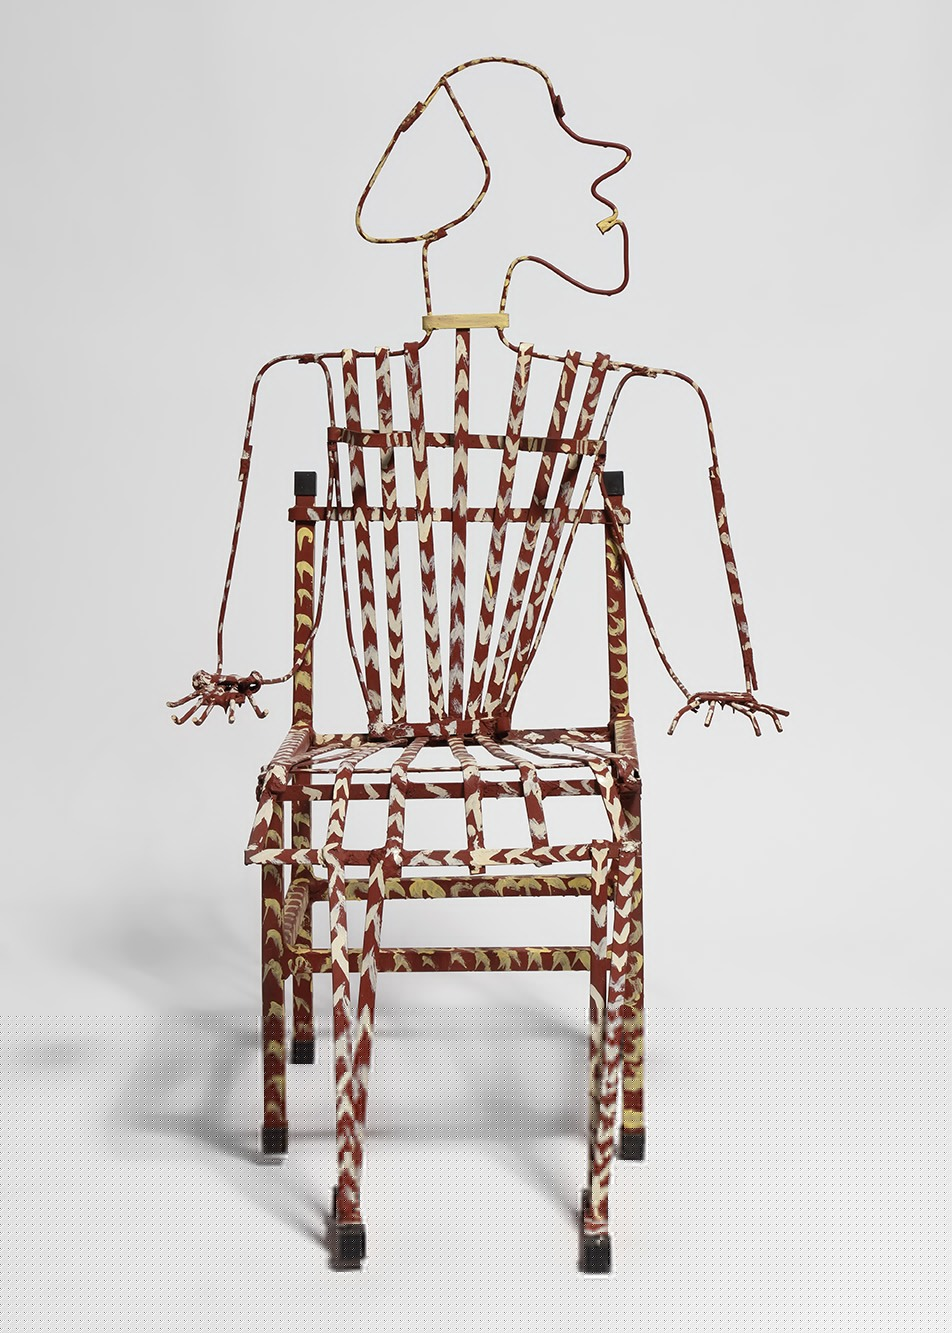 An untitled sculpture by Thornton Dial, dated 1987.